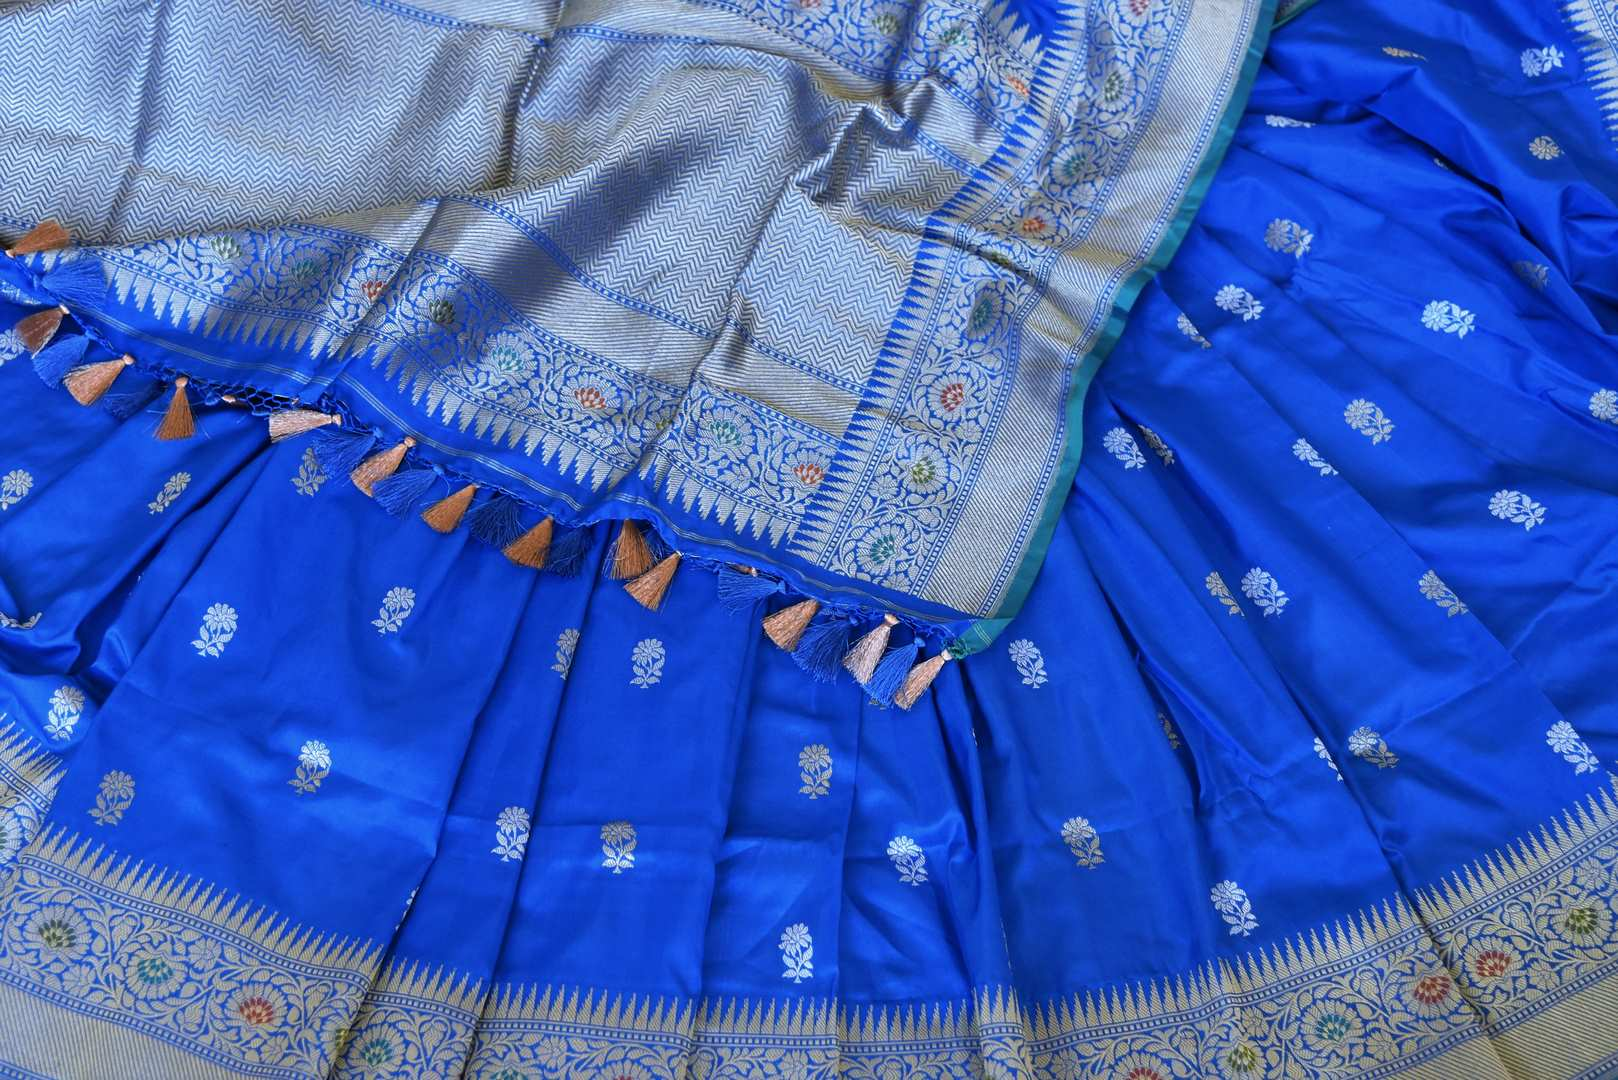 Buy blue Banarasi silk sari online in USA with flower buta and zari minakari border. Raise your ethnic style quotient at weddings and special occasions with exquisite Indian sarees from Pure Elegance Indian clothing store in USA. Pick from a tasteful collection of handloom sarees, pure silk sarees, Banarasi saris. Shop now.-details